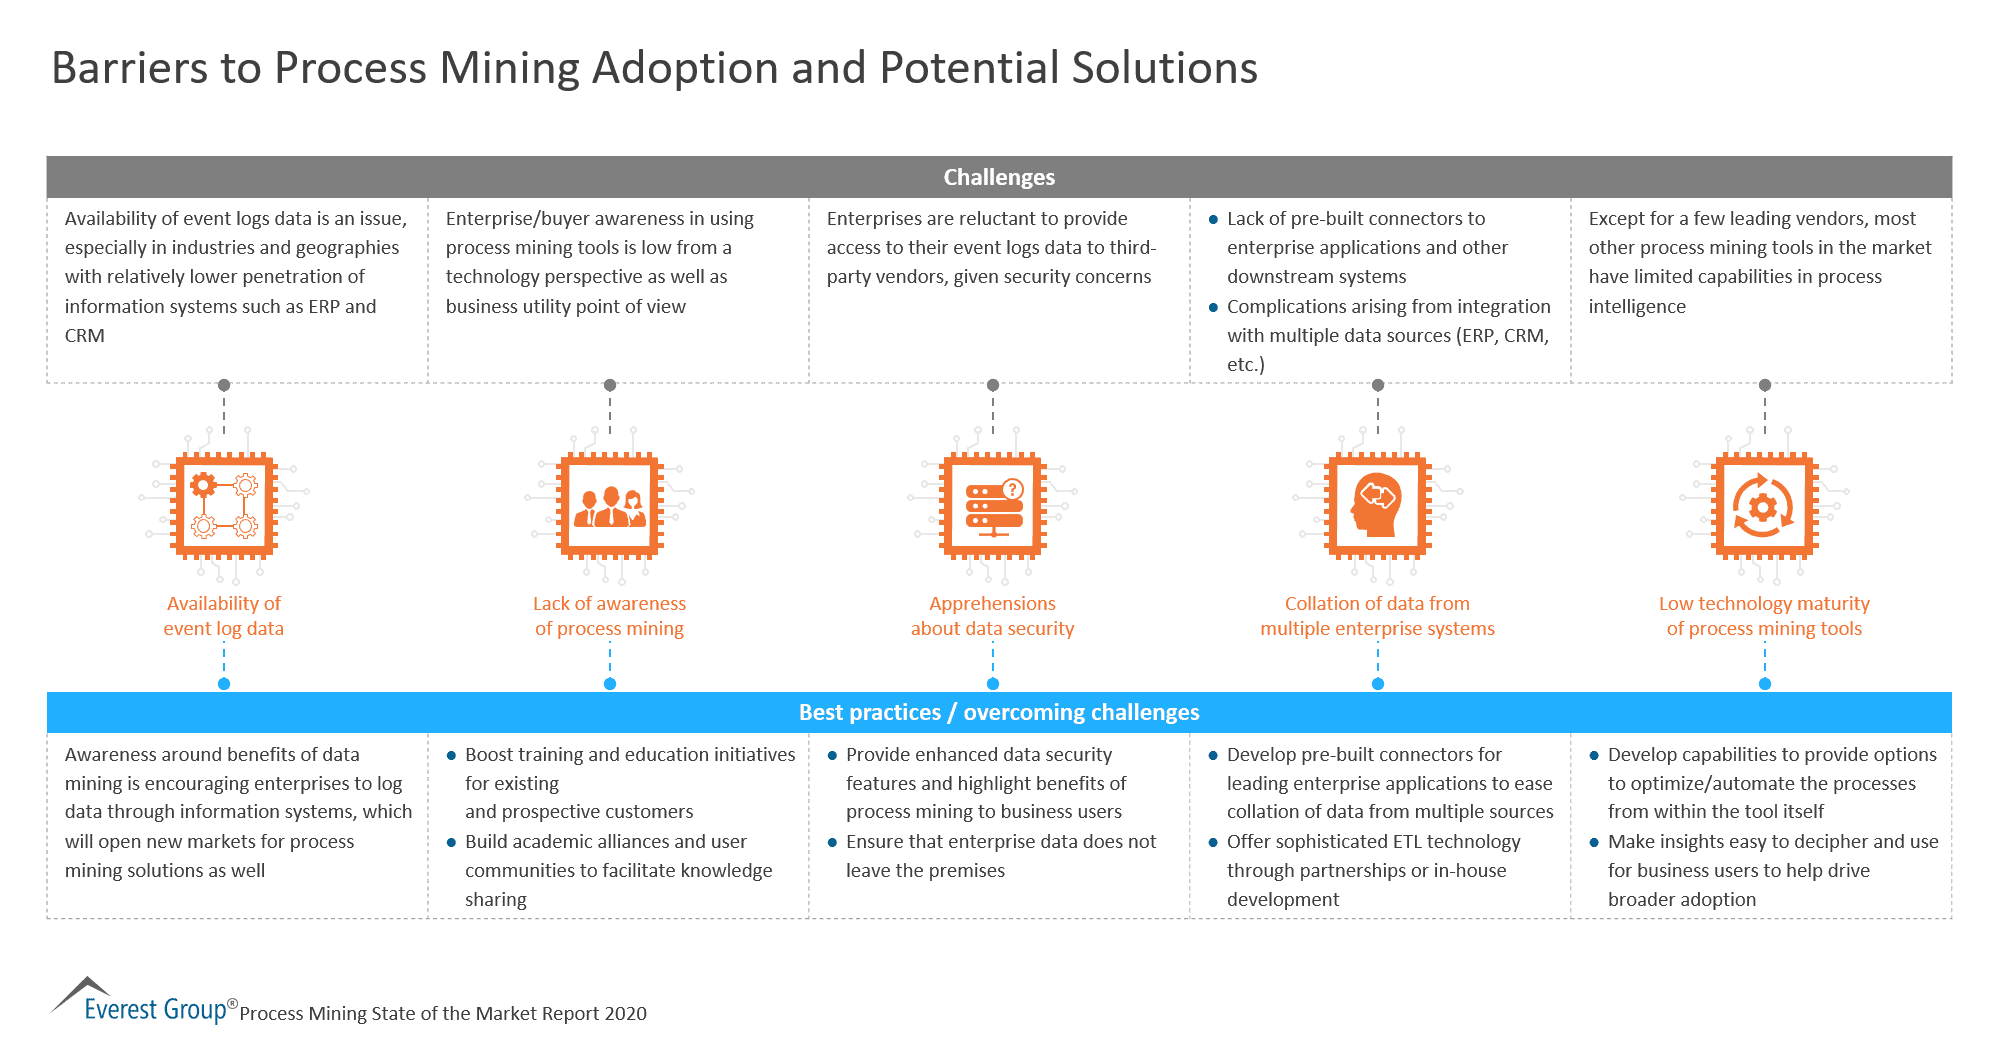 Barriers to Process Mining Adoption and Potential Solutions for Vendors